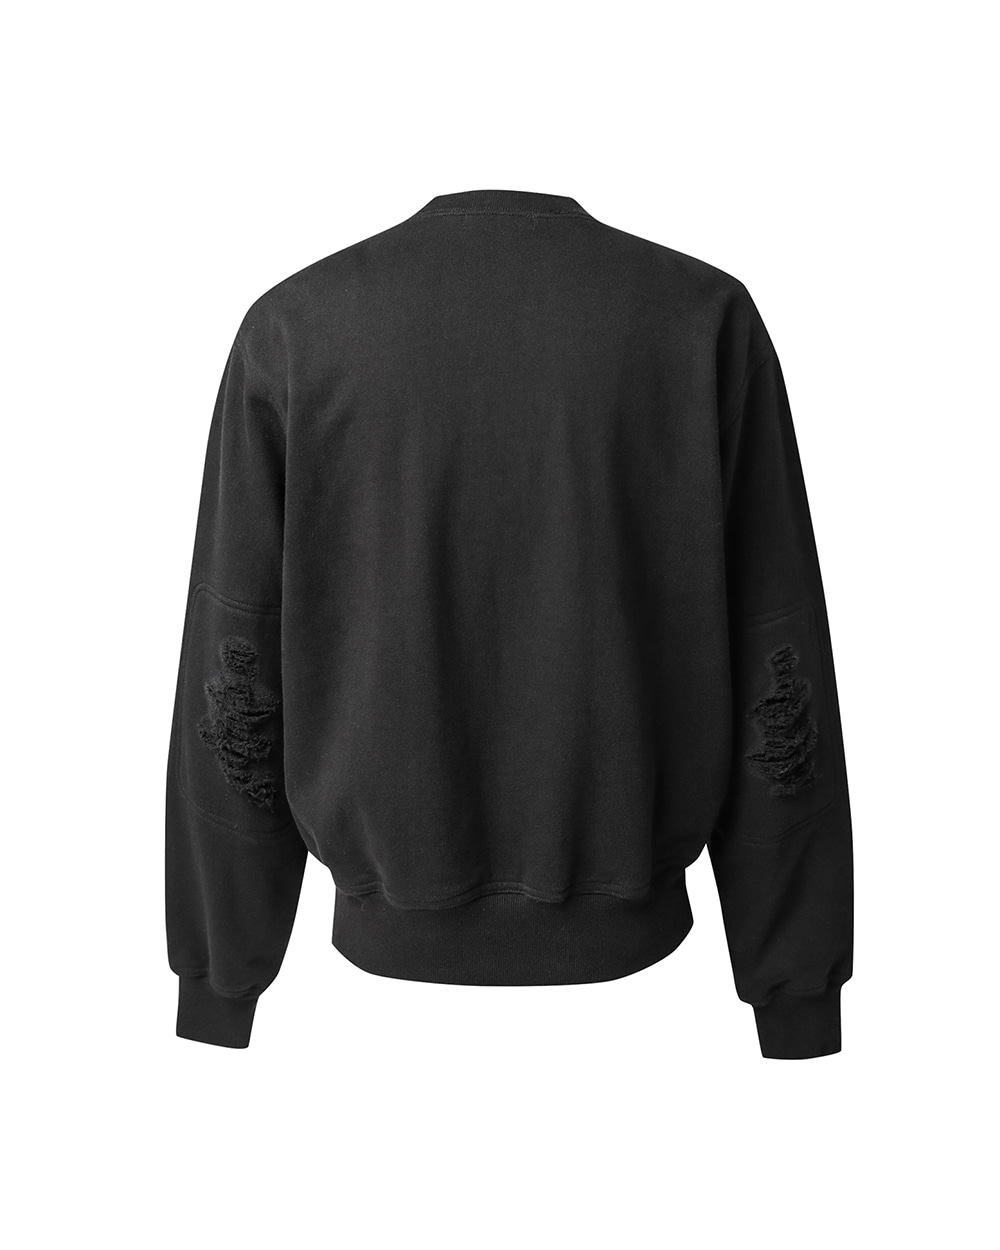 ATE STUDIOS AUTHENTIC SCAR SWEAT SHIRTS (Black)